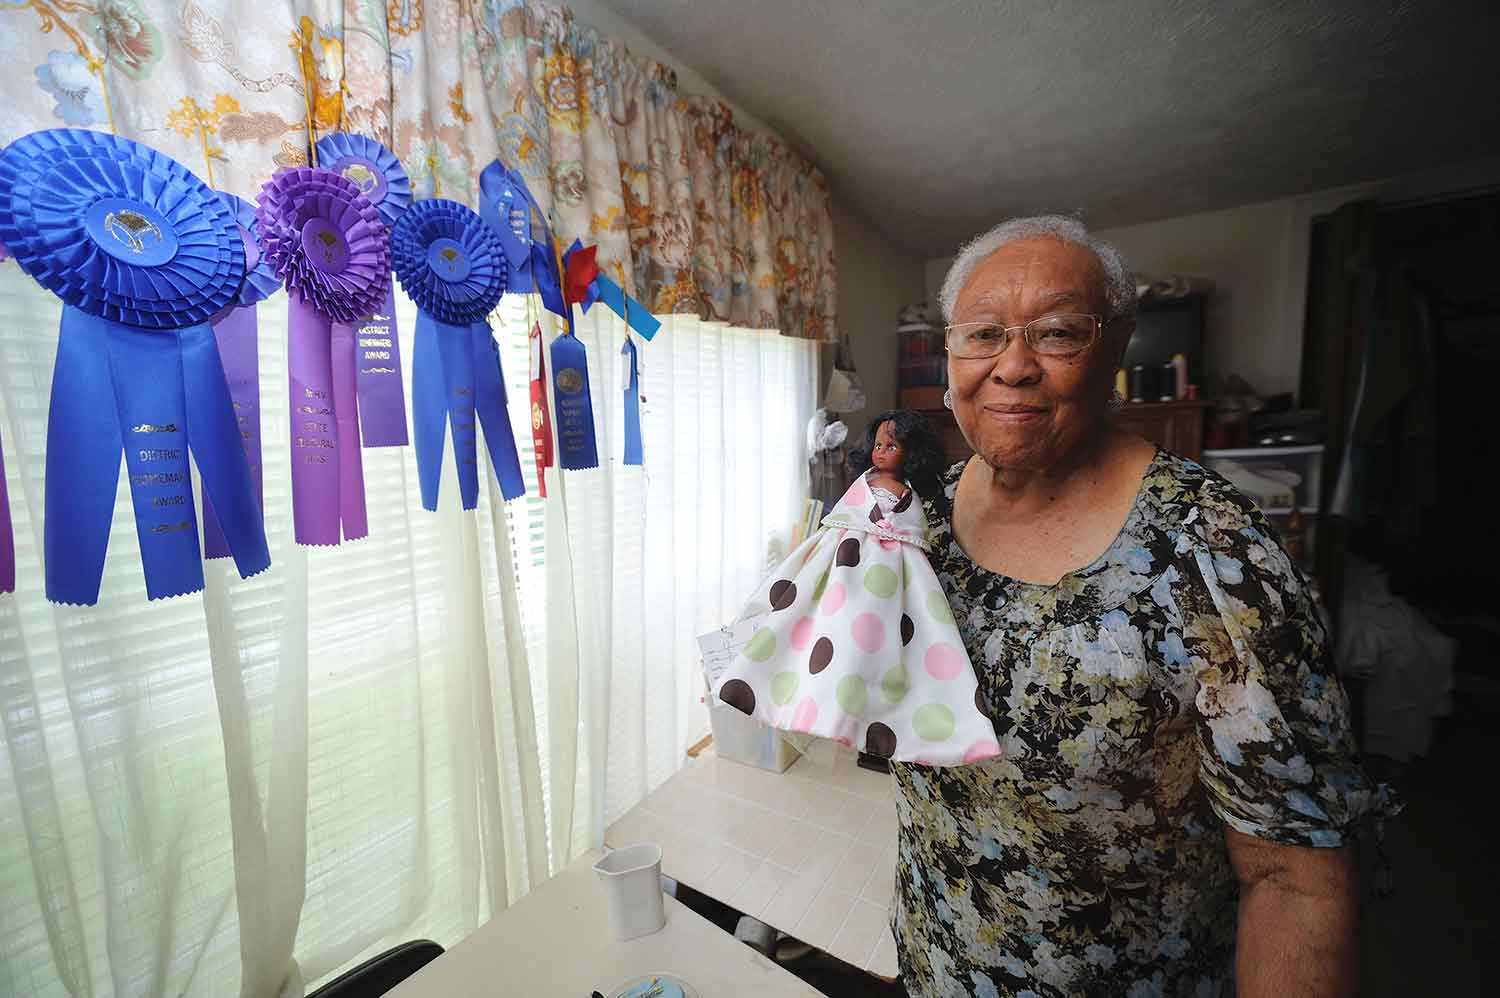 An woman with short grey hair stands to the right of a windowsill with blue and purple ribbons hanging from a multicolored curtain. The woman holds a doll wearing a white dress with light green, light pink, and dark brown polka dots.